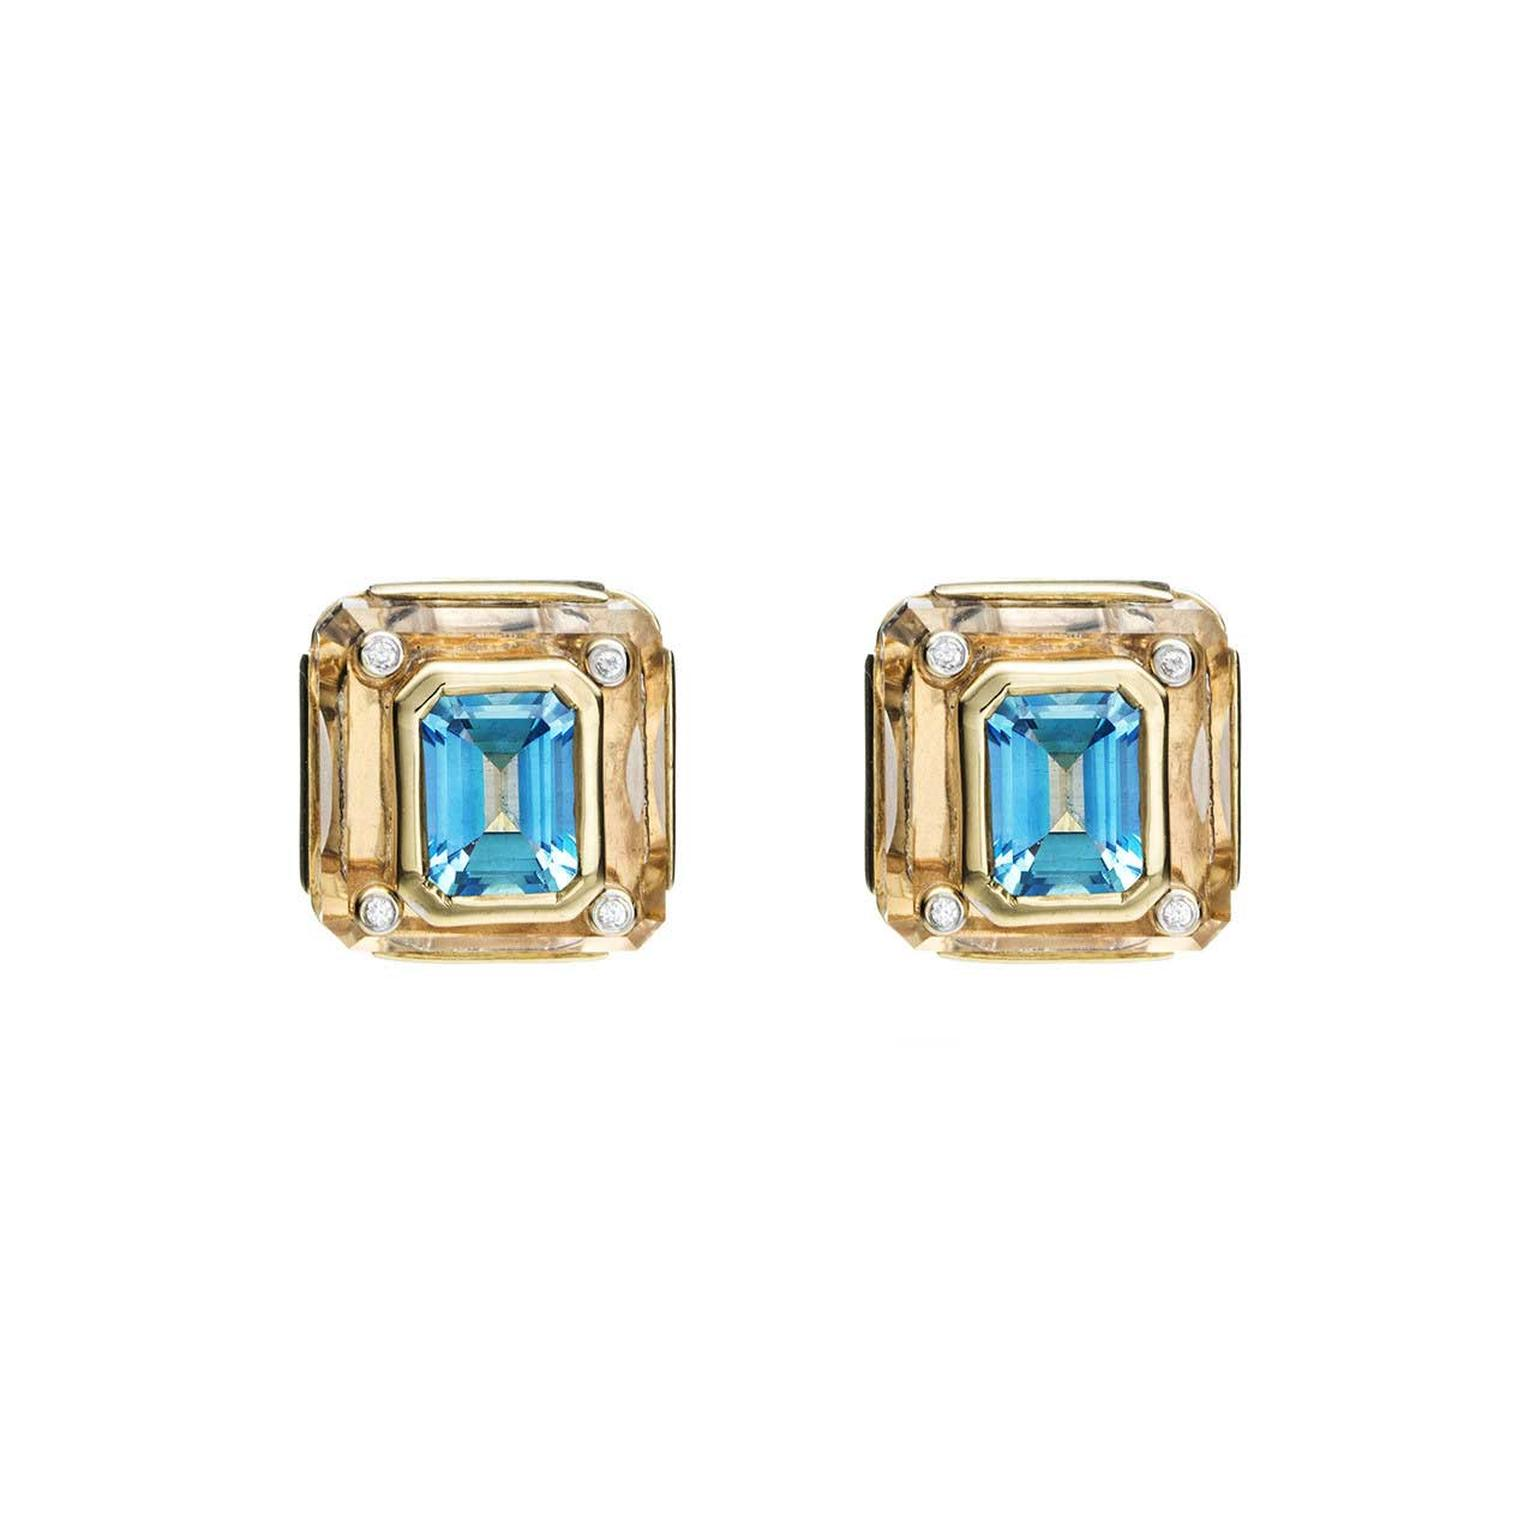 Kara Ross Cava earrings in rock crystal with blue topaz